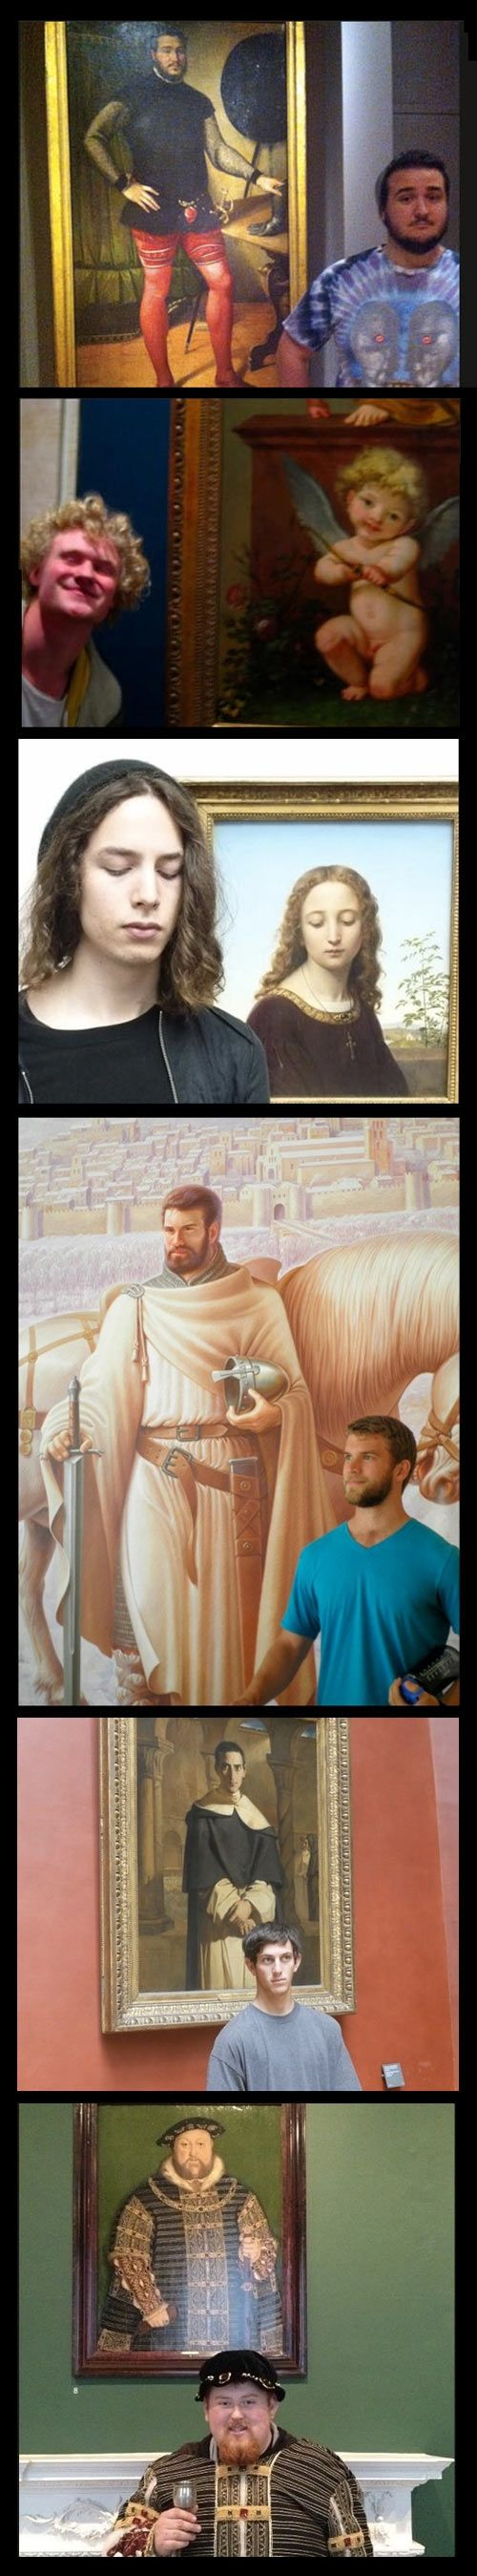 That awkward moment when a painting has a doppelgänger.: